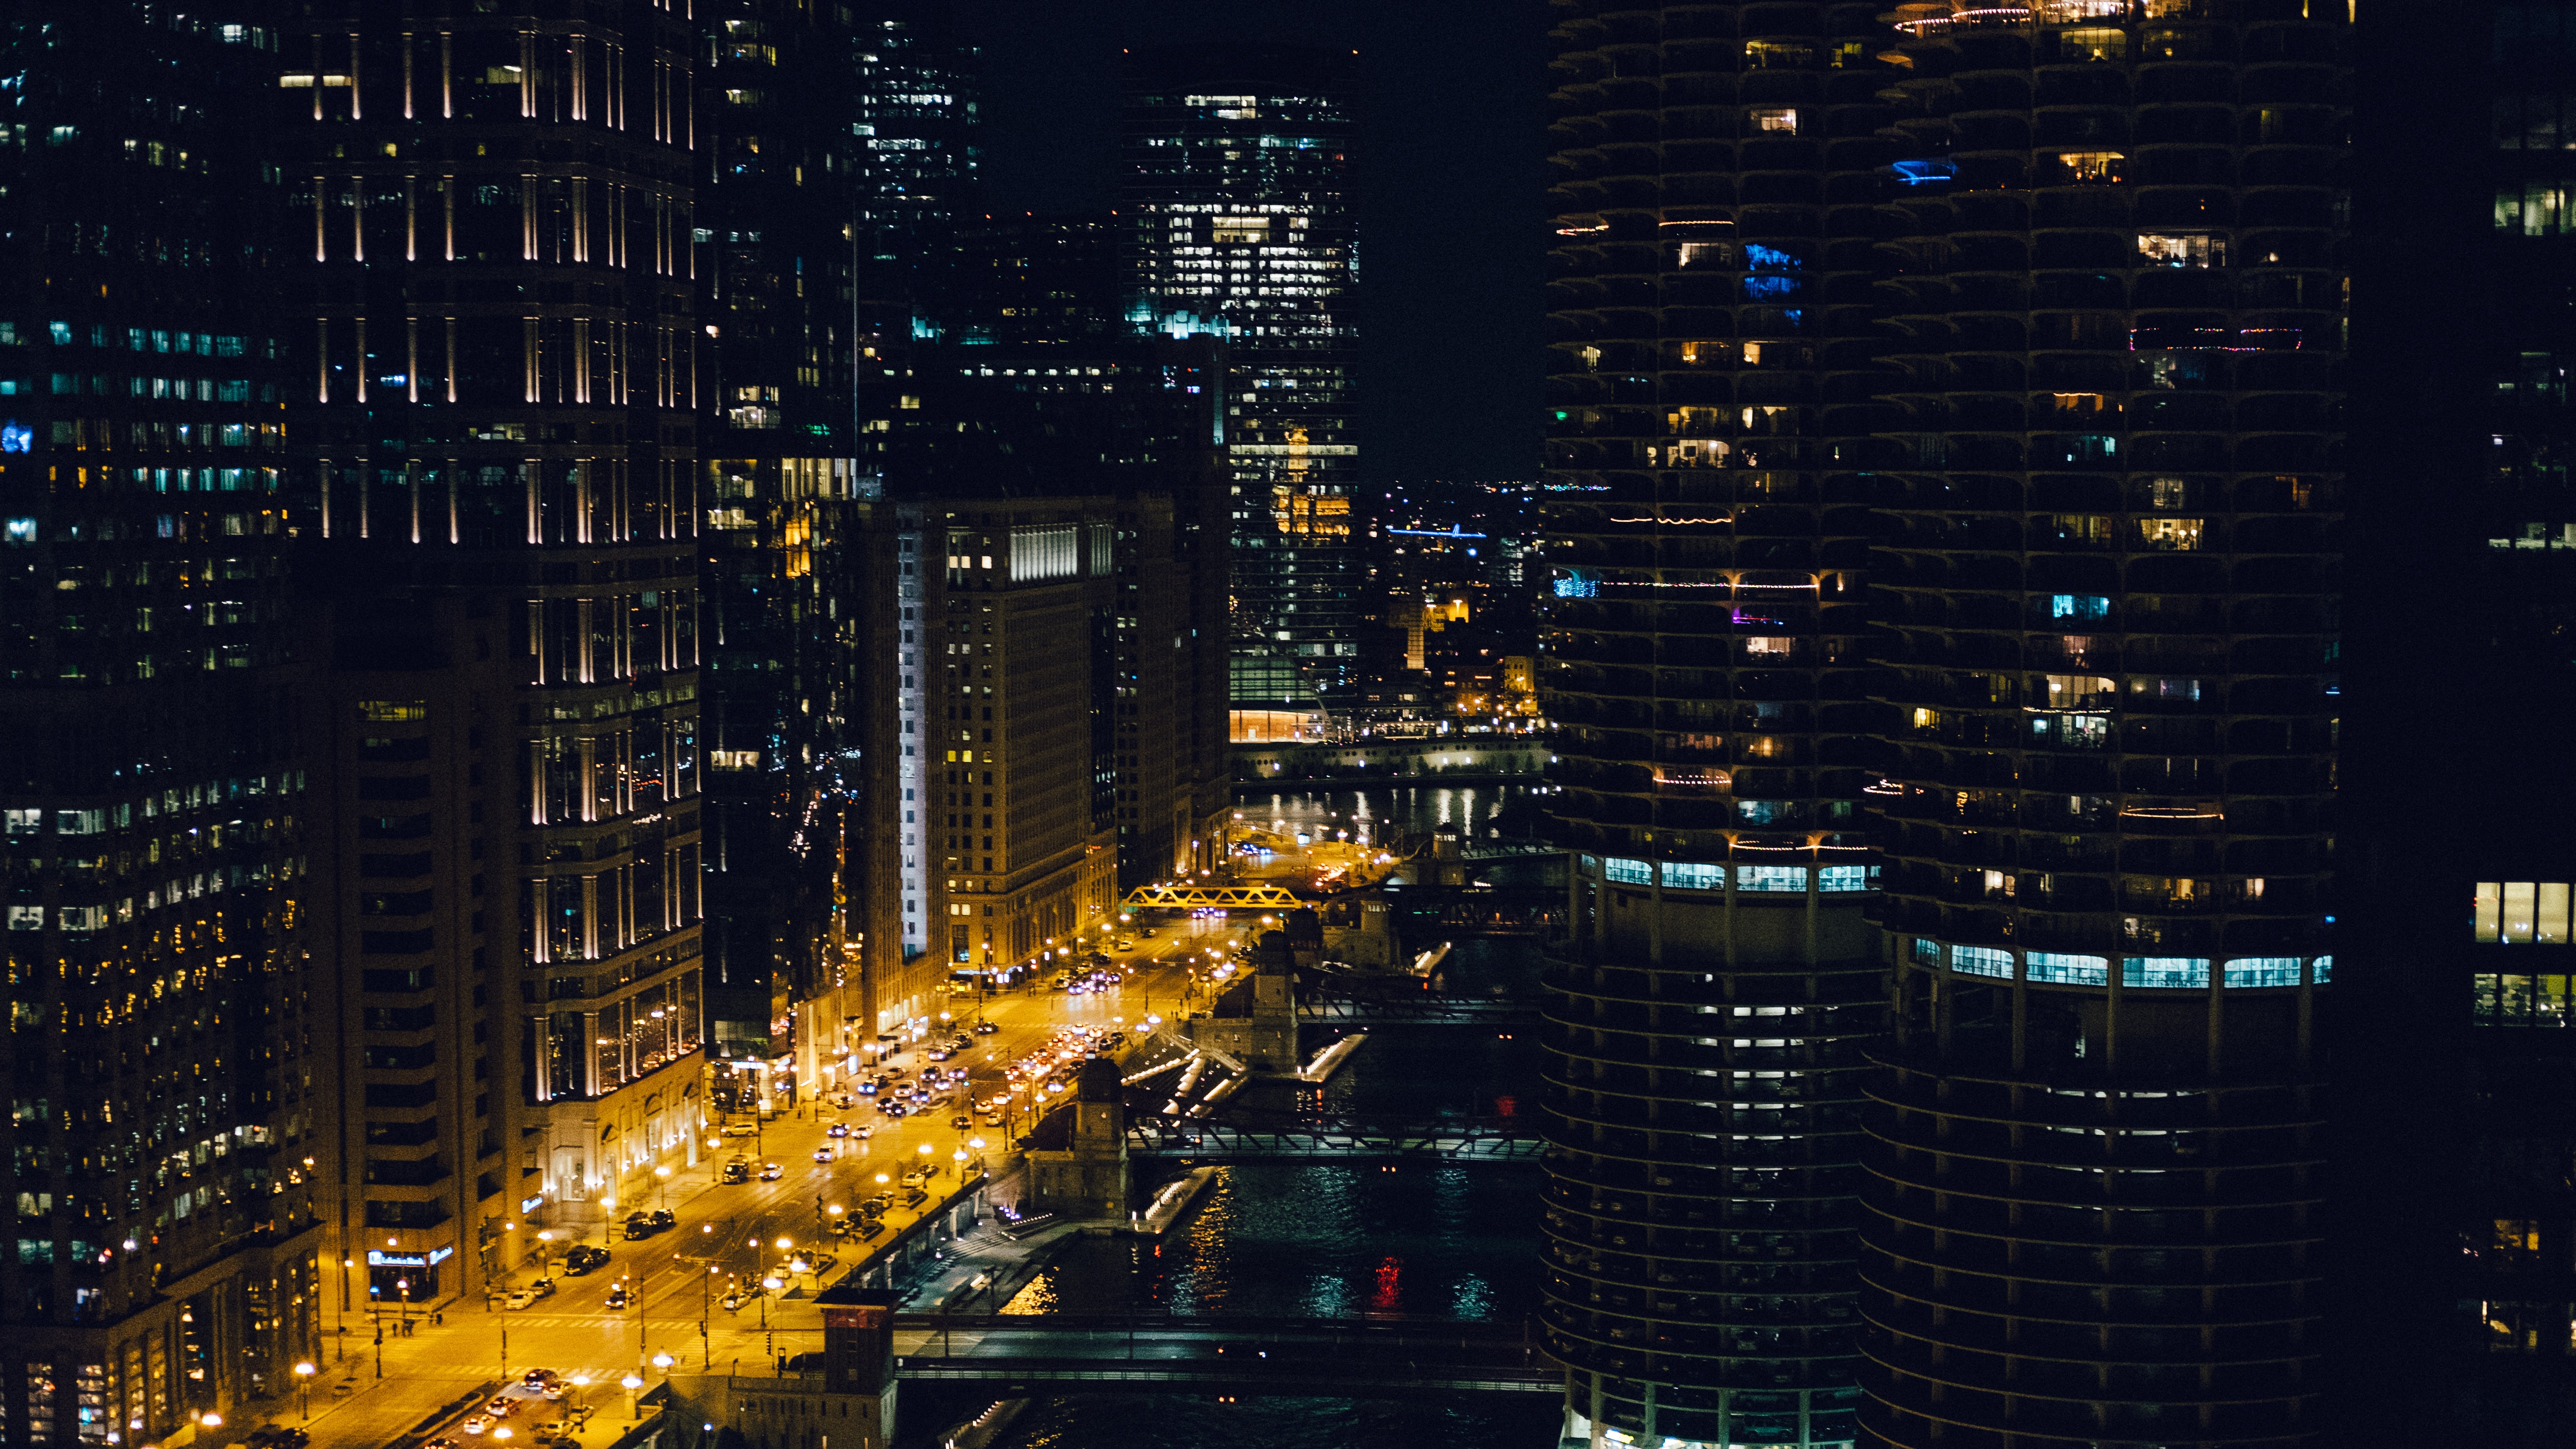 structural shot of buildings during nighttime